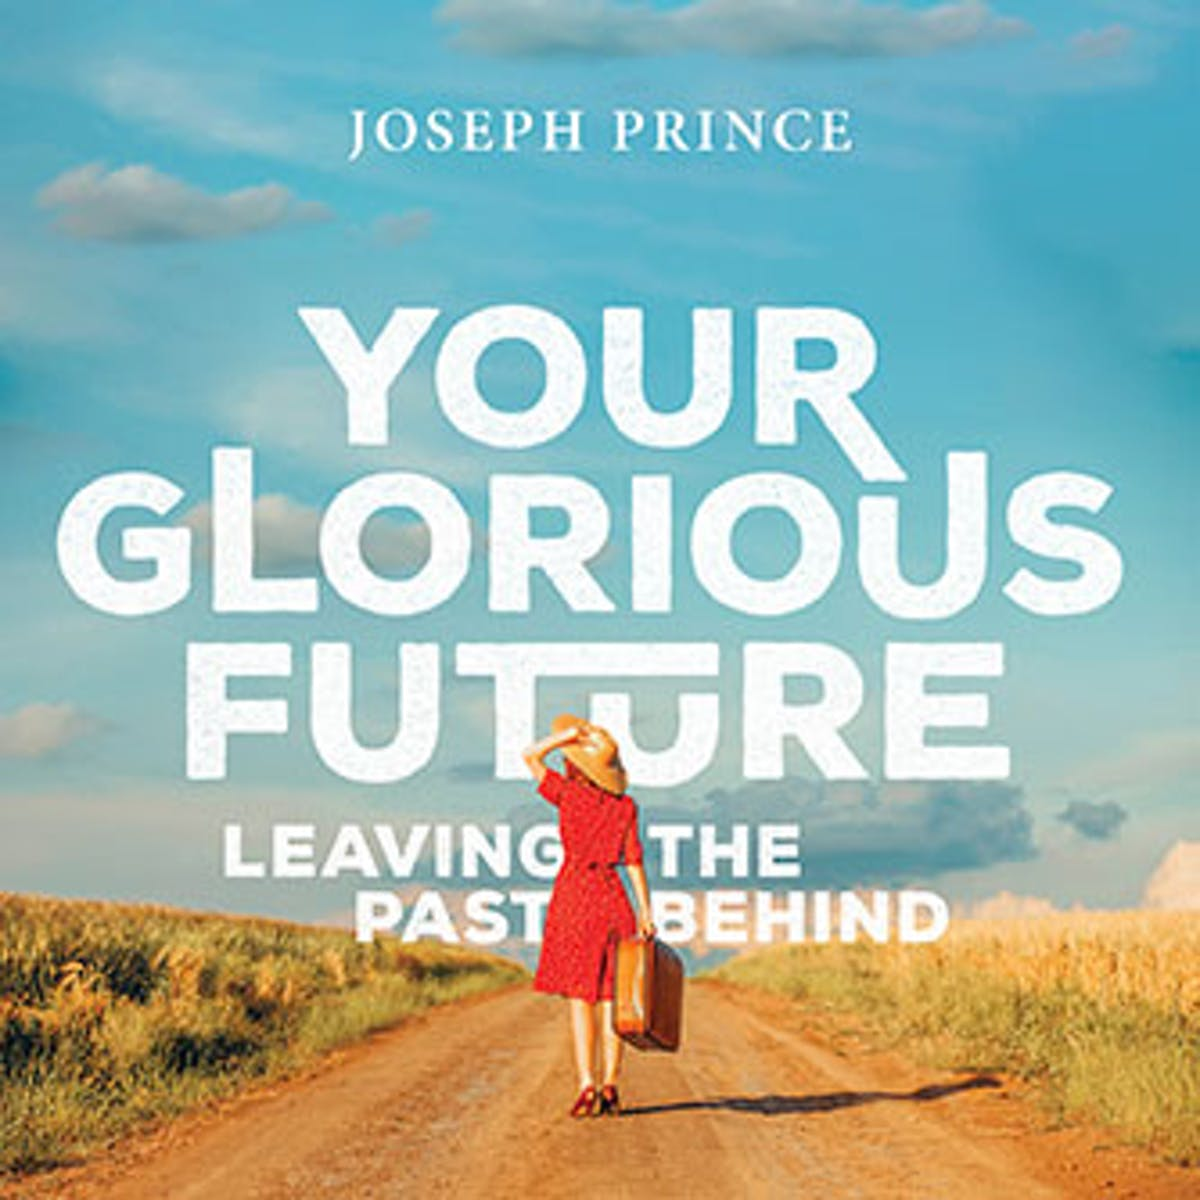 Your Glorious Future—Leaving the Past Behind